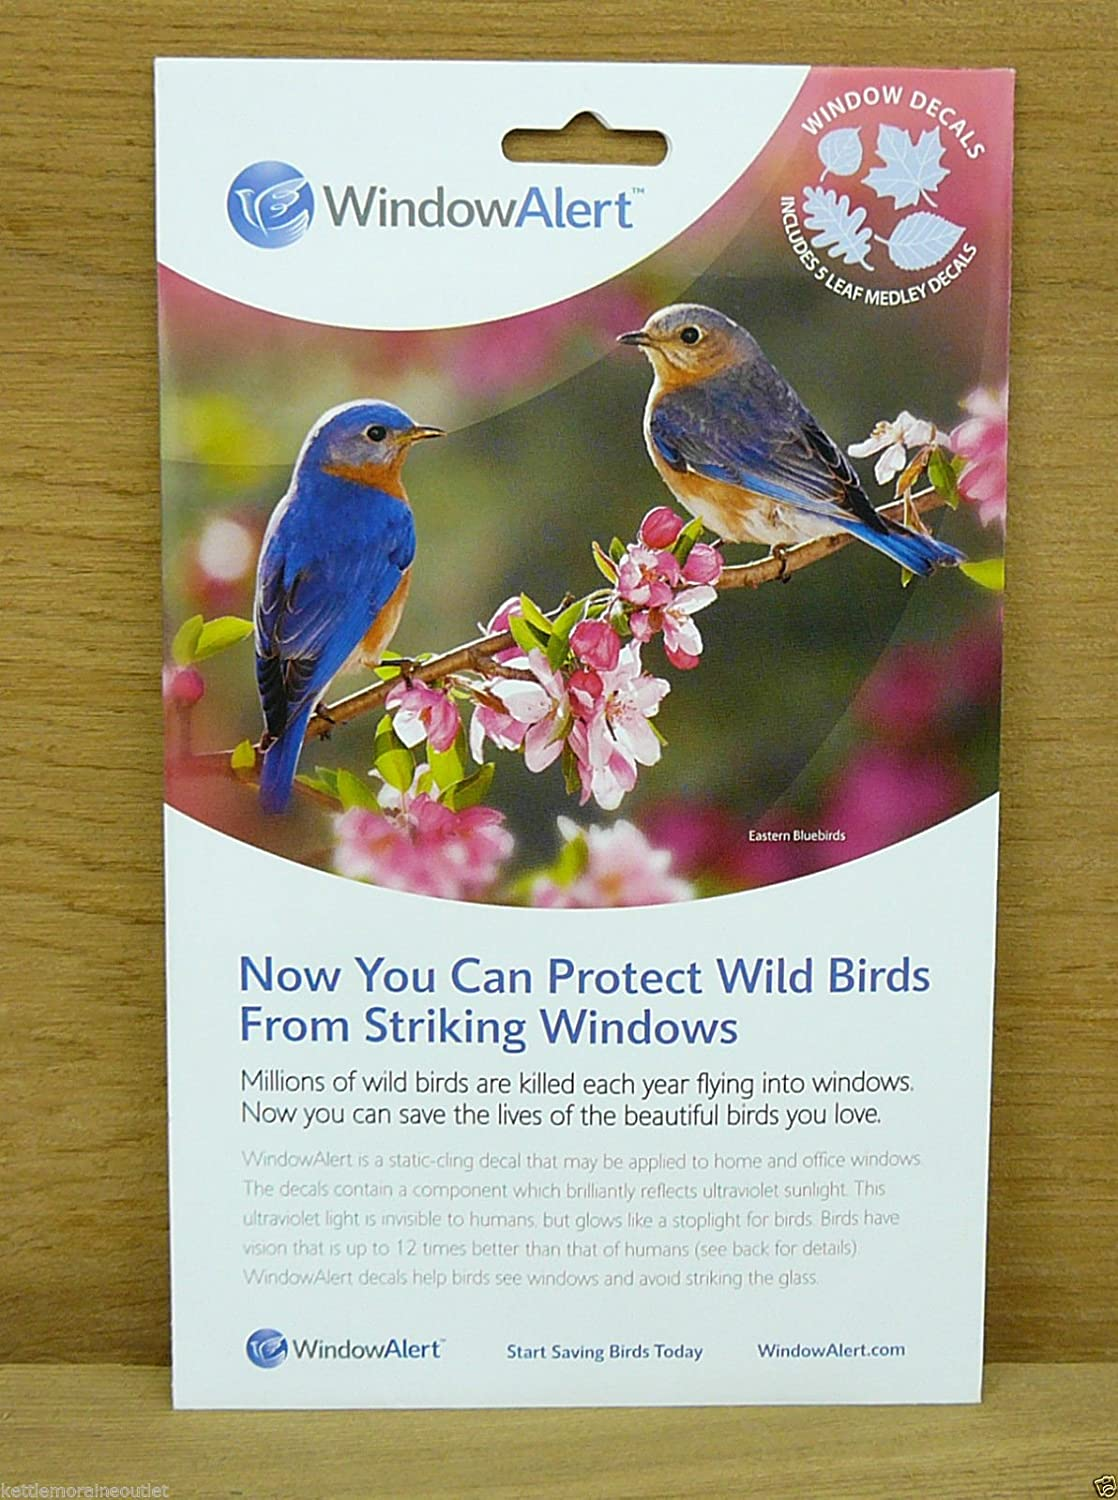 Amazoncom Window Alert Leaf Medley Decals Save Protect Wild - Invisible window decals for birds